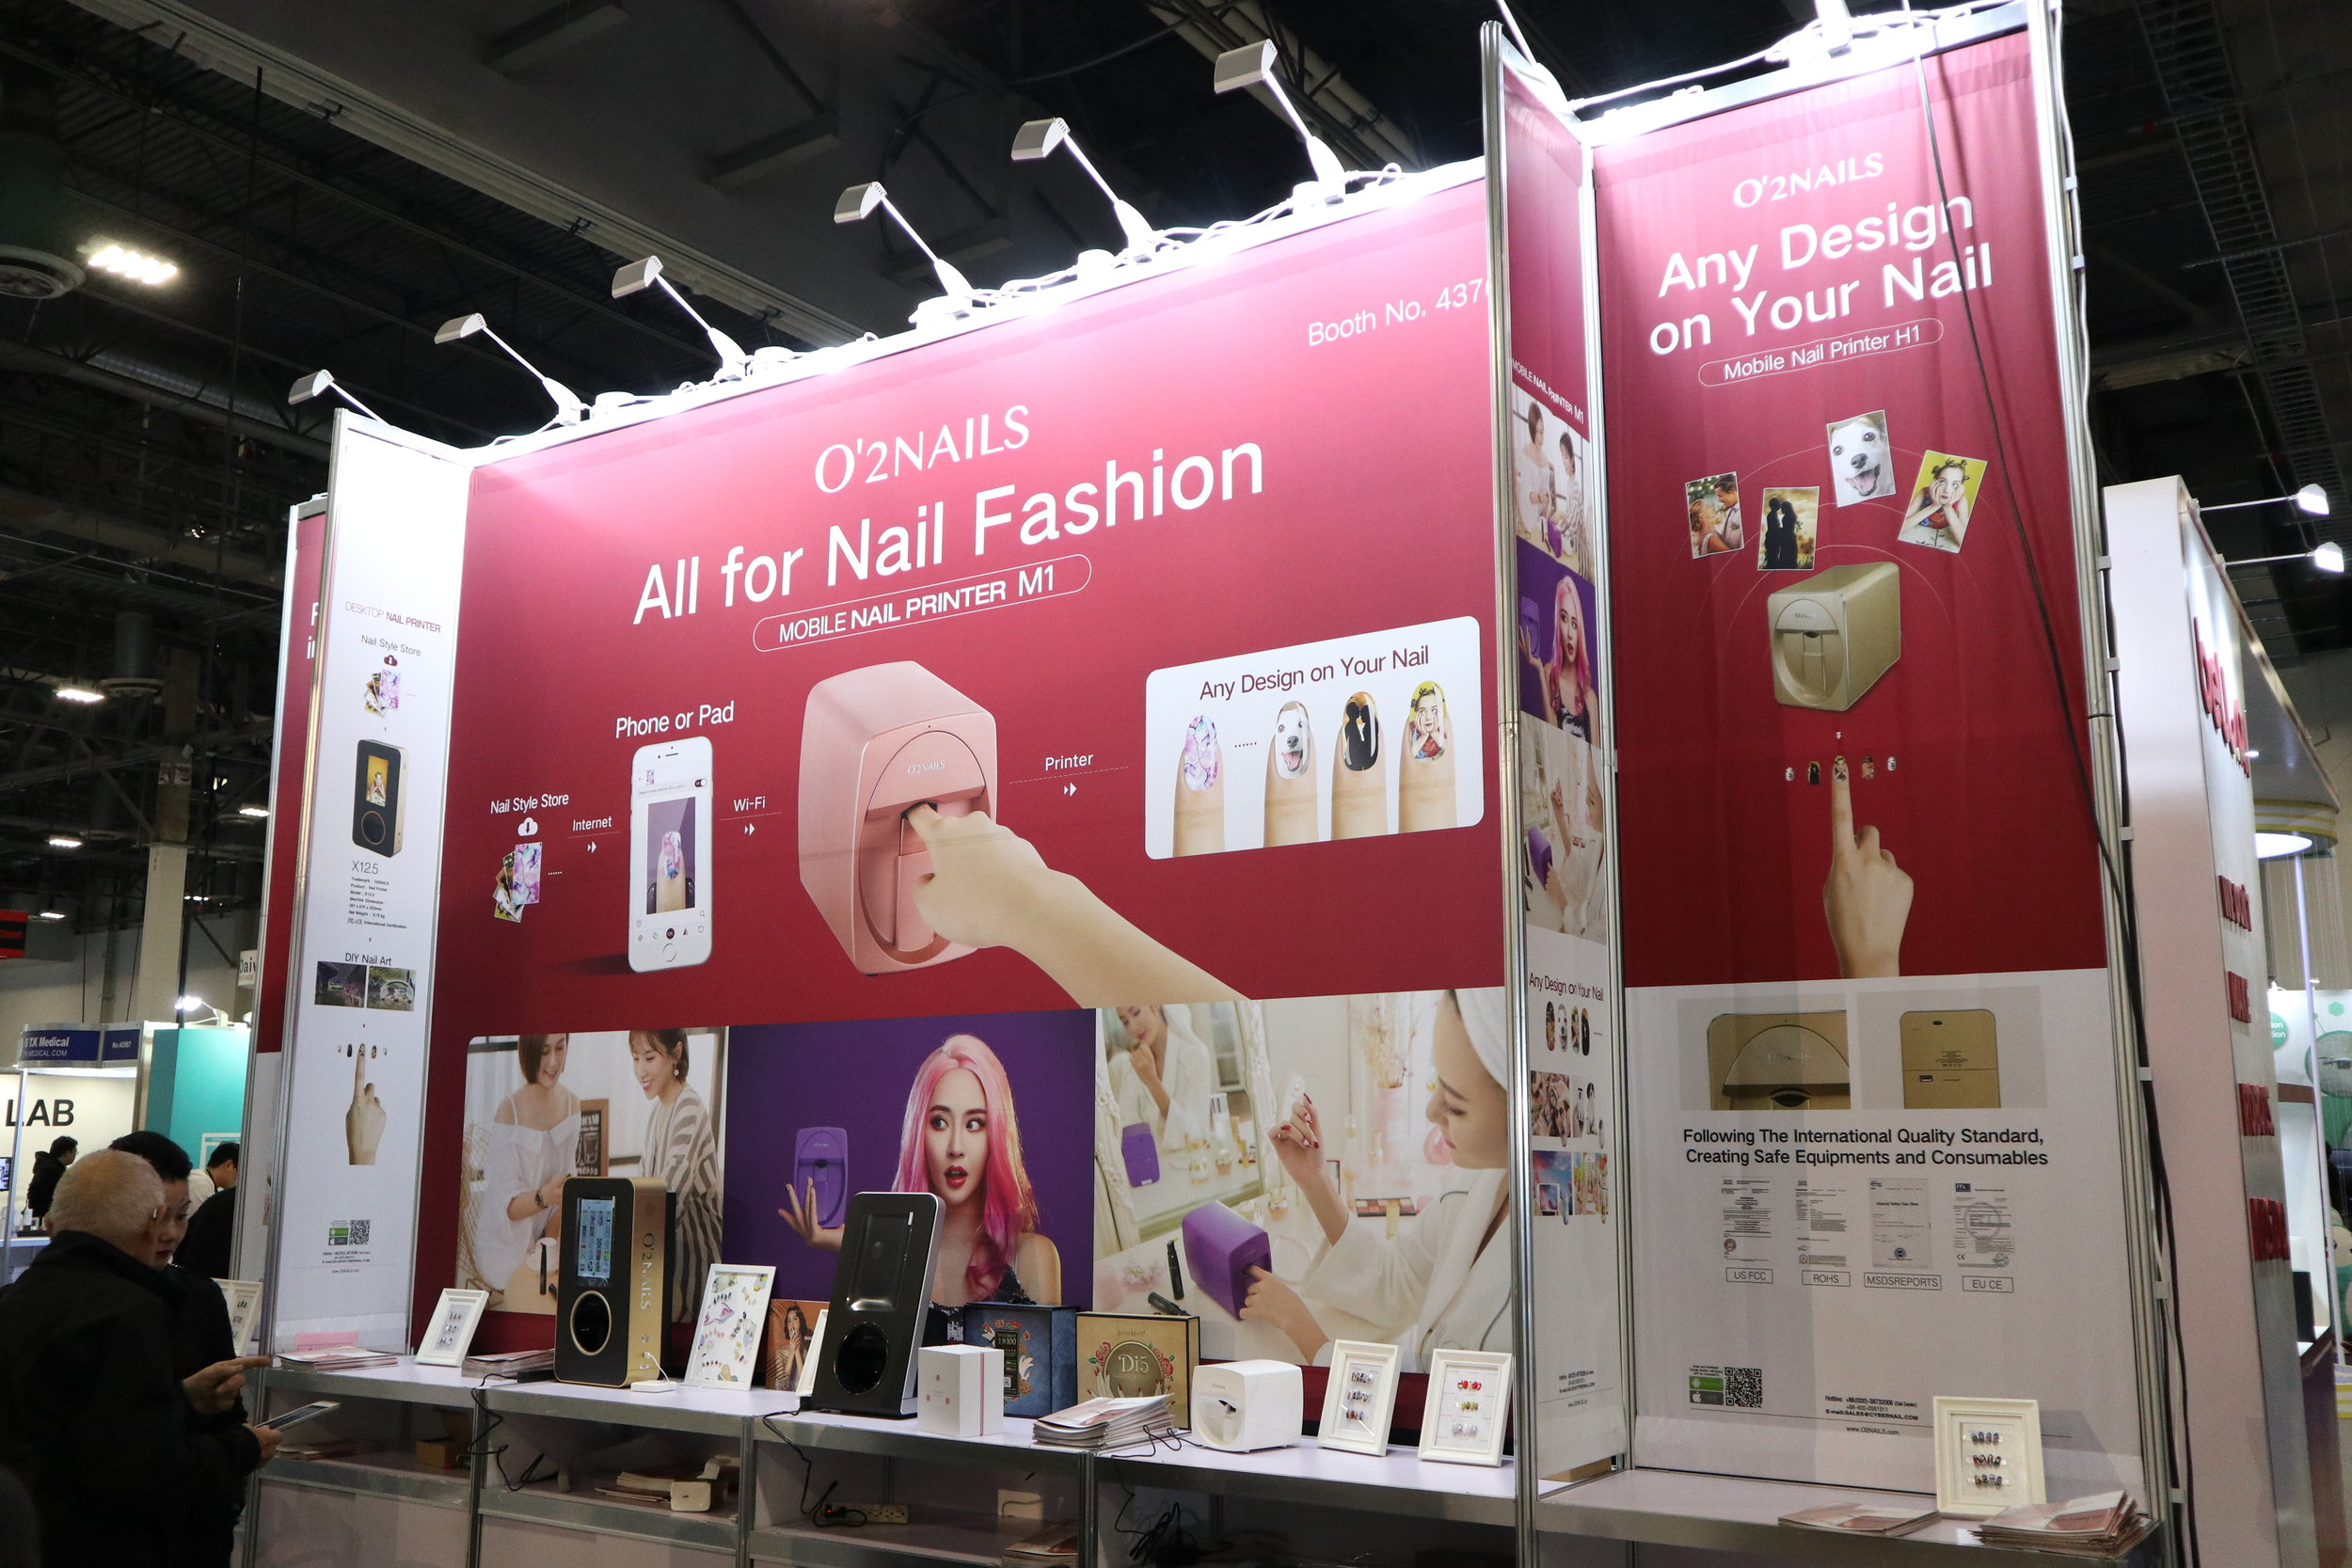 From printed nail designs to skin age identification and printable make-up solutions — the beauty industry is embracing technology at a rapid pace